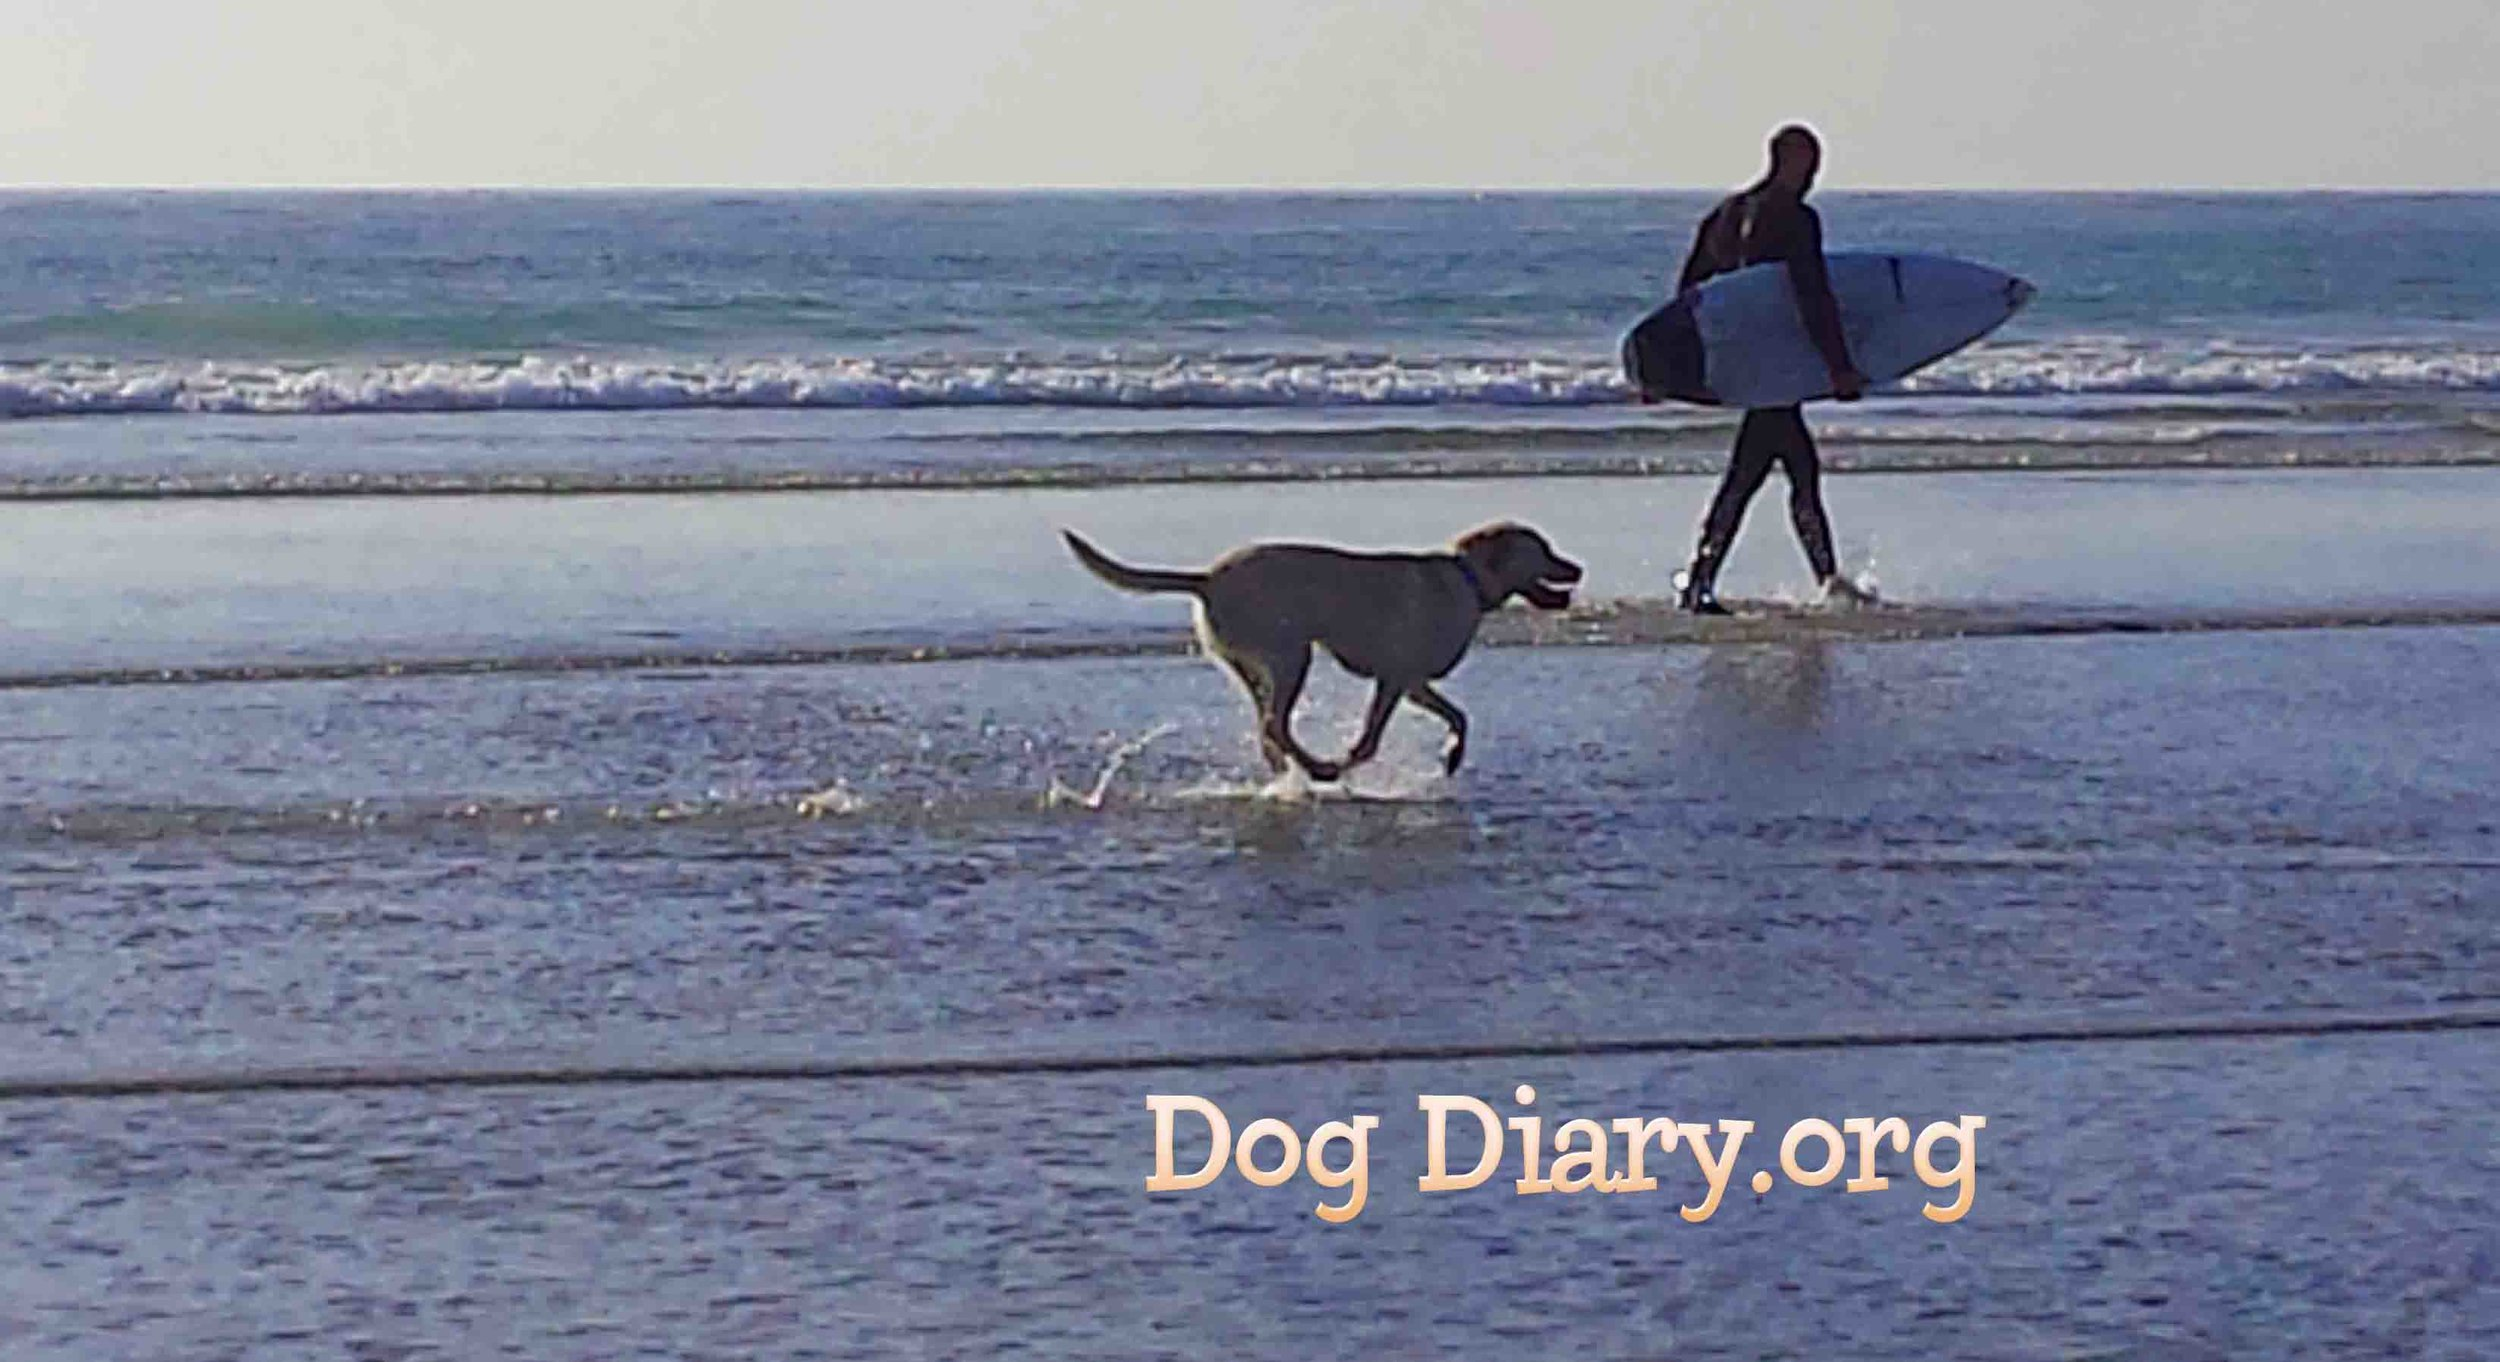 Dog Beach surf dogs - man and animal. Photo: (c) Barb Ayers, DogDiary.org